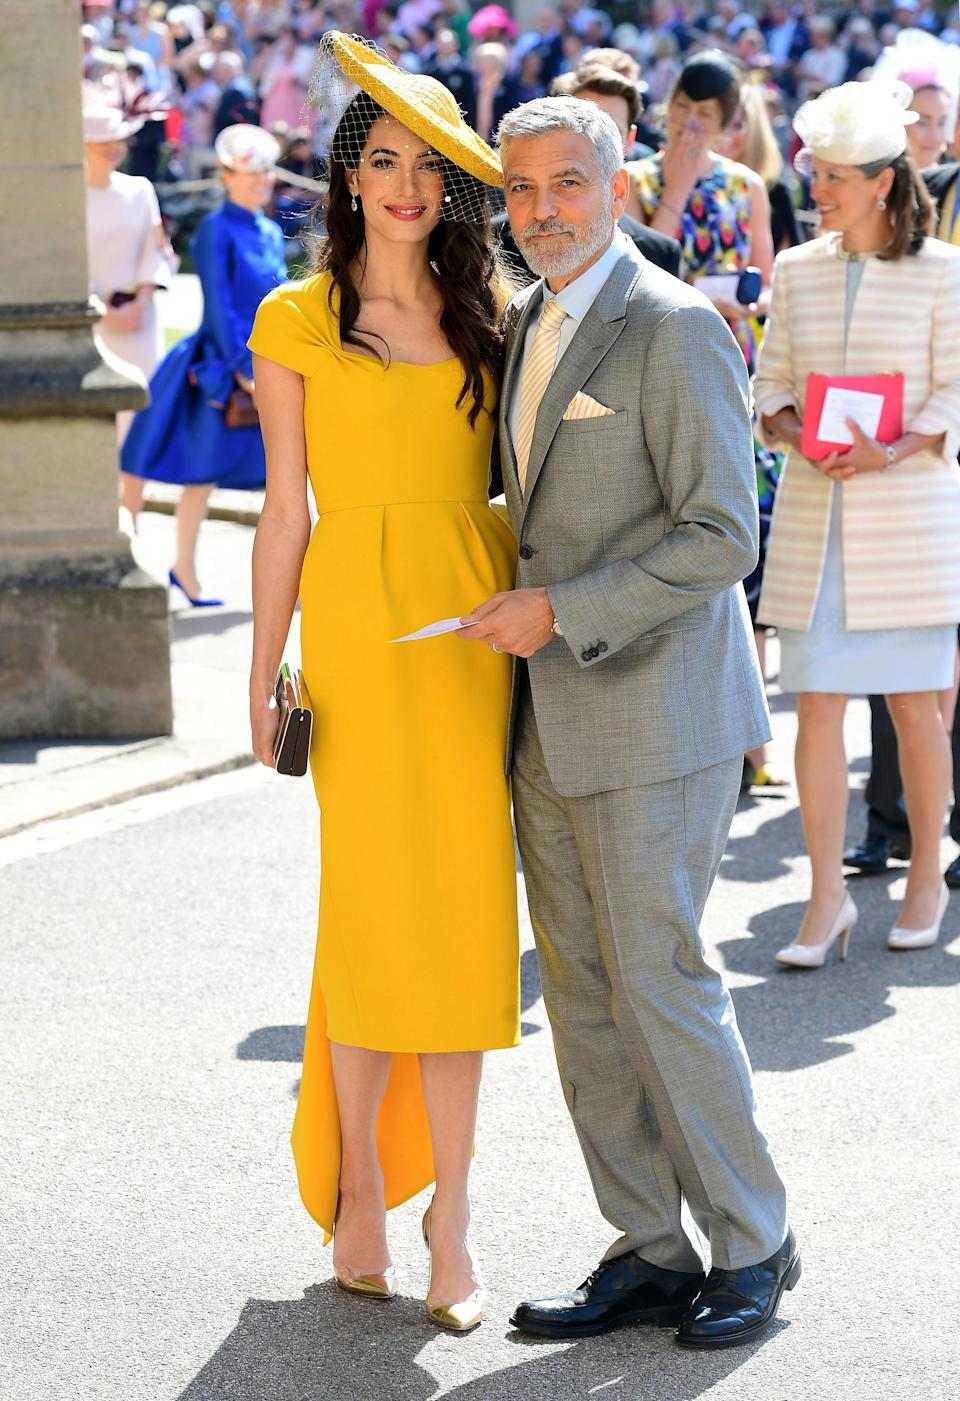 Amal Clooney wore a bold, Stella McCartney look to the royal wedding in May [Photo: PA Wire]